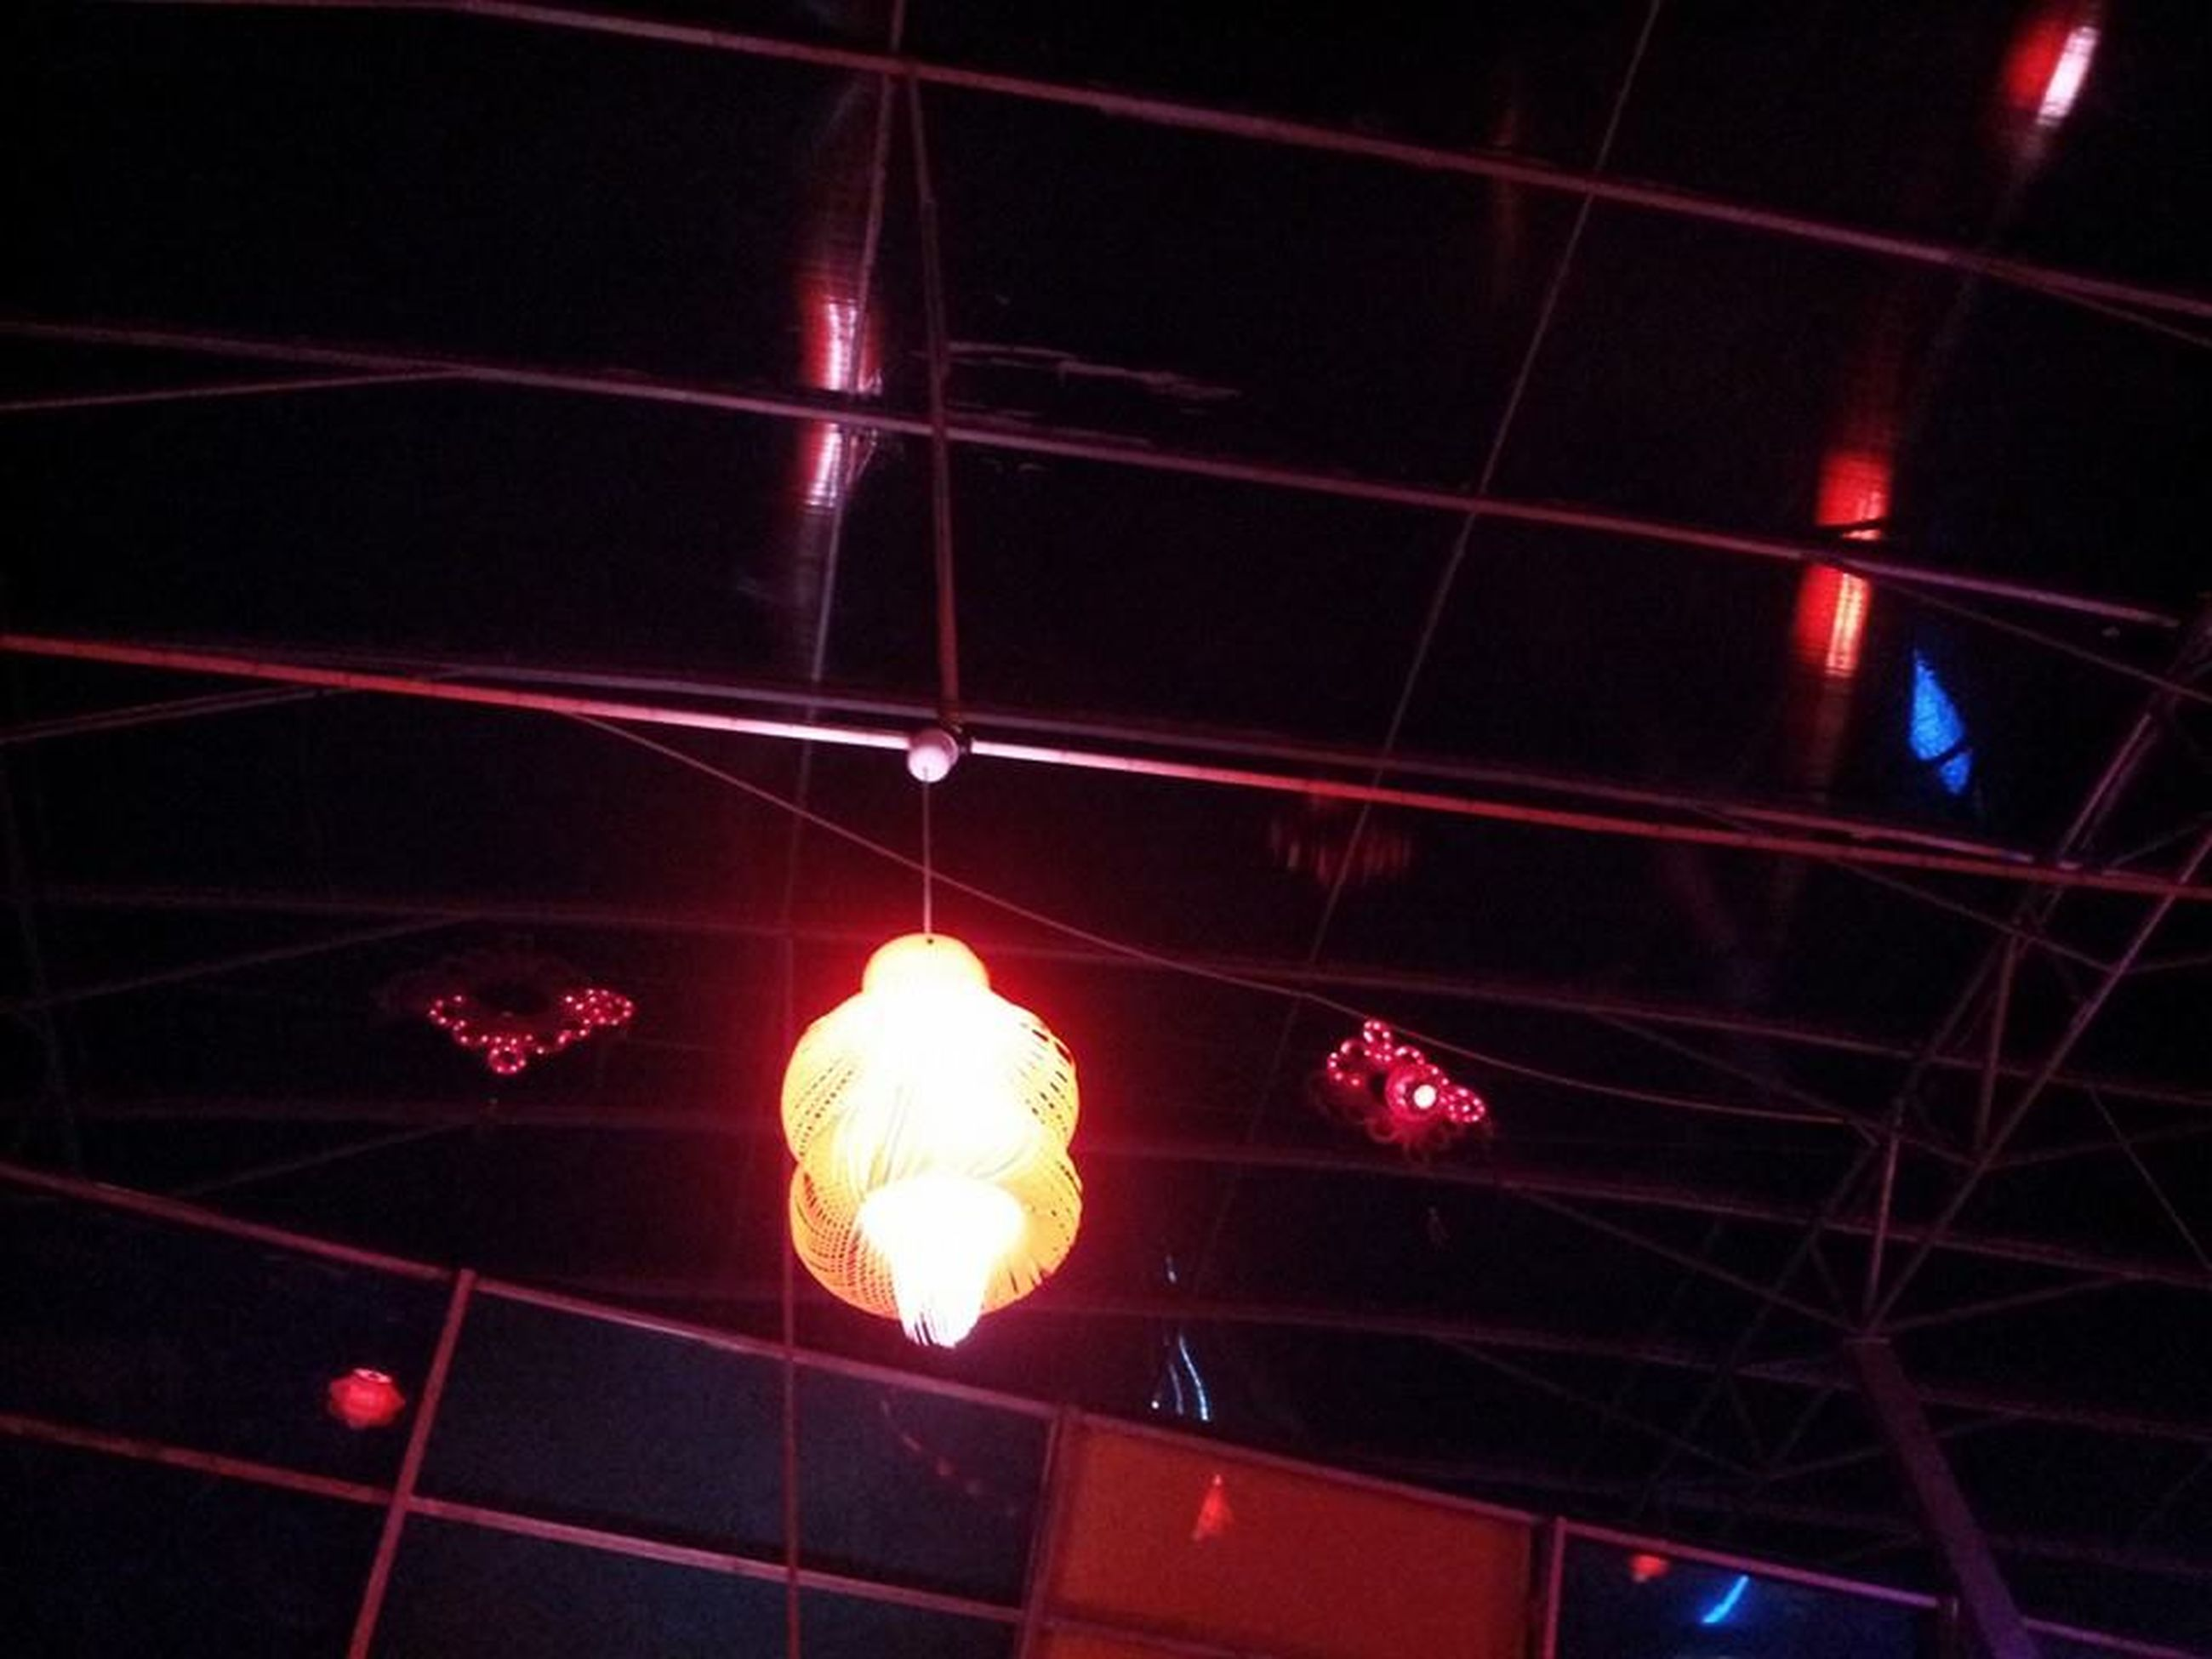 low angle view, hanging, ceiling, illuminated, decoration, lighting equipment, red, culture, glowing, party - social event, group of objects, power line, no people, multi colored